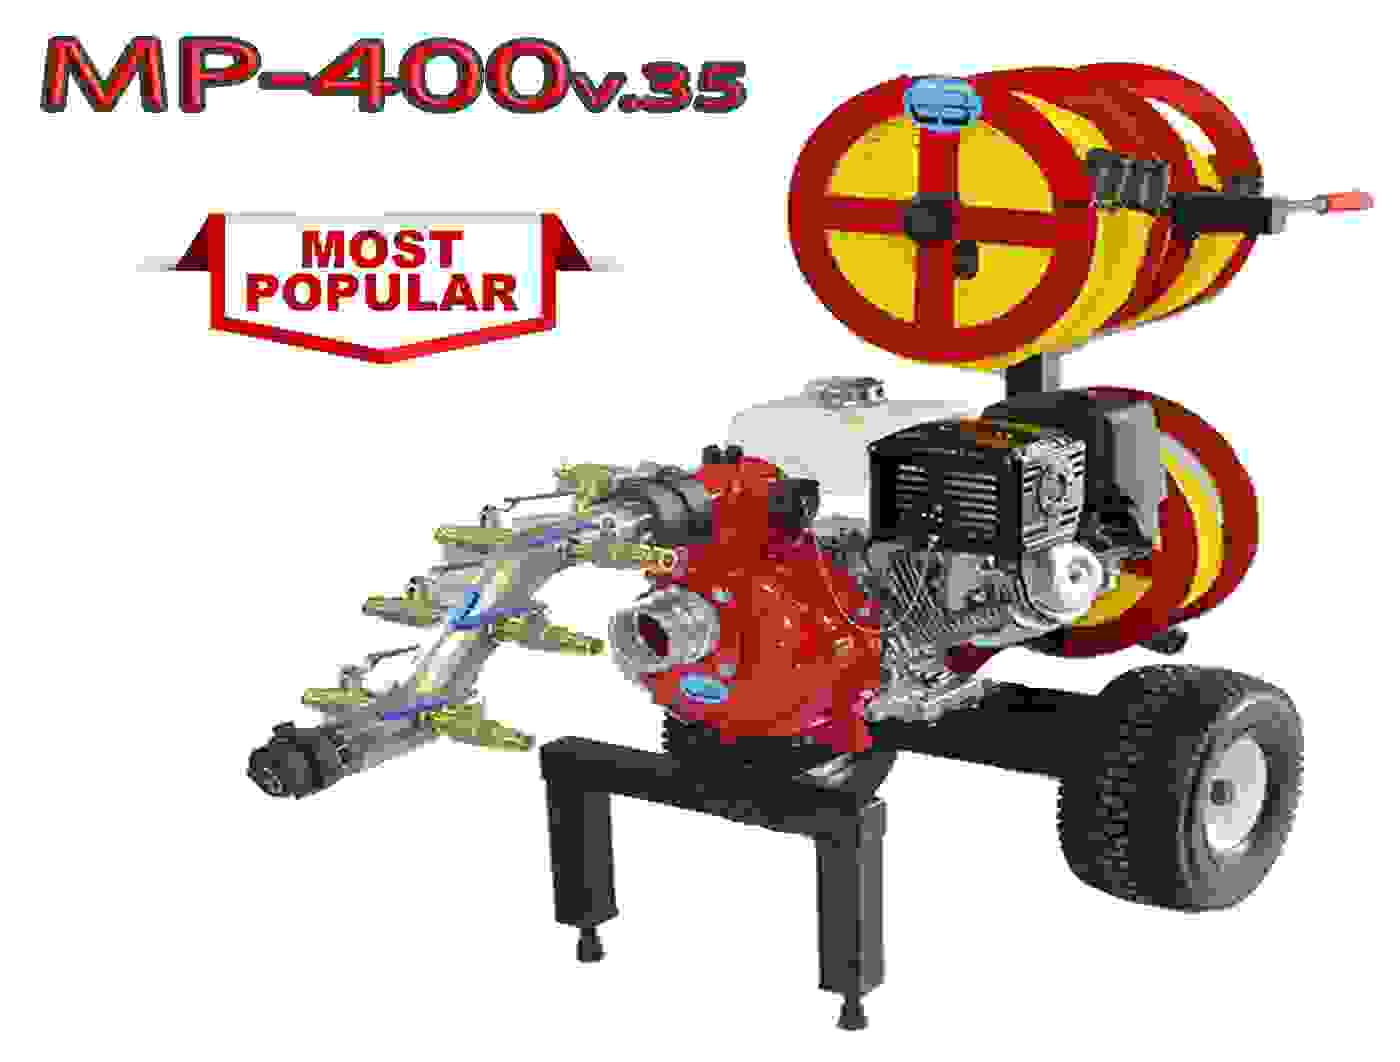 Code 3 water MP-400 v.35 wildfire pump mobile fire pump water cart system